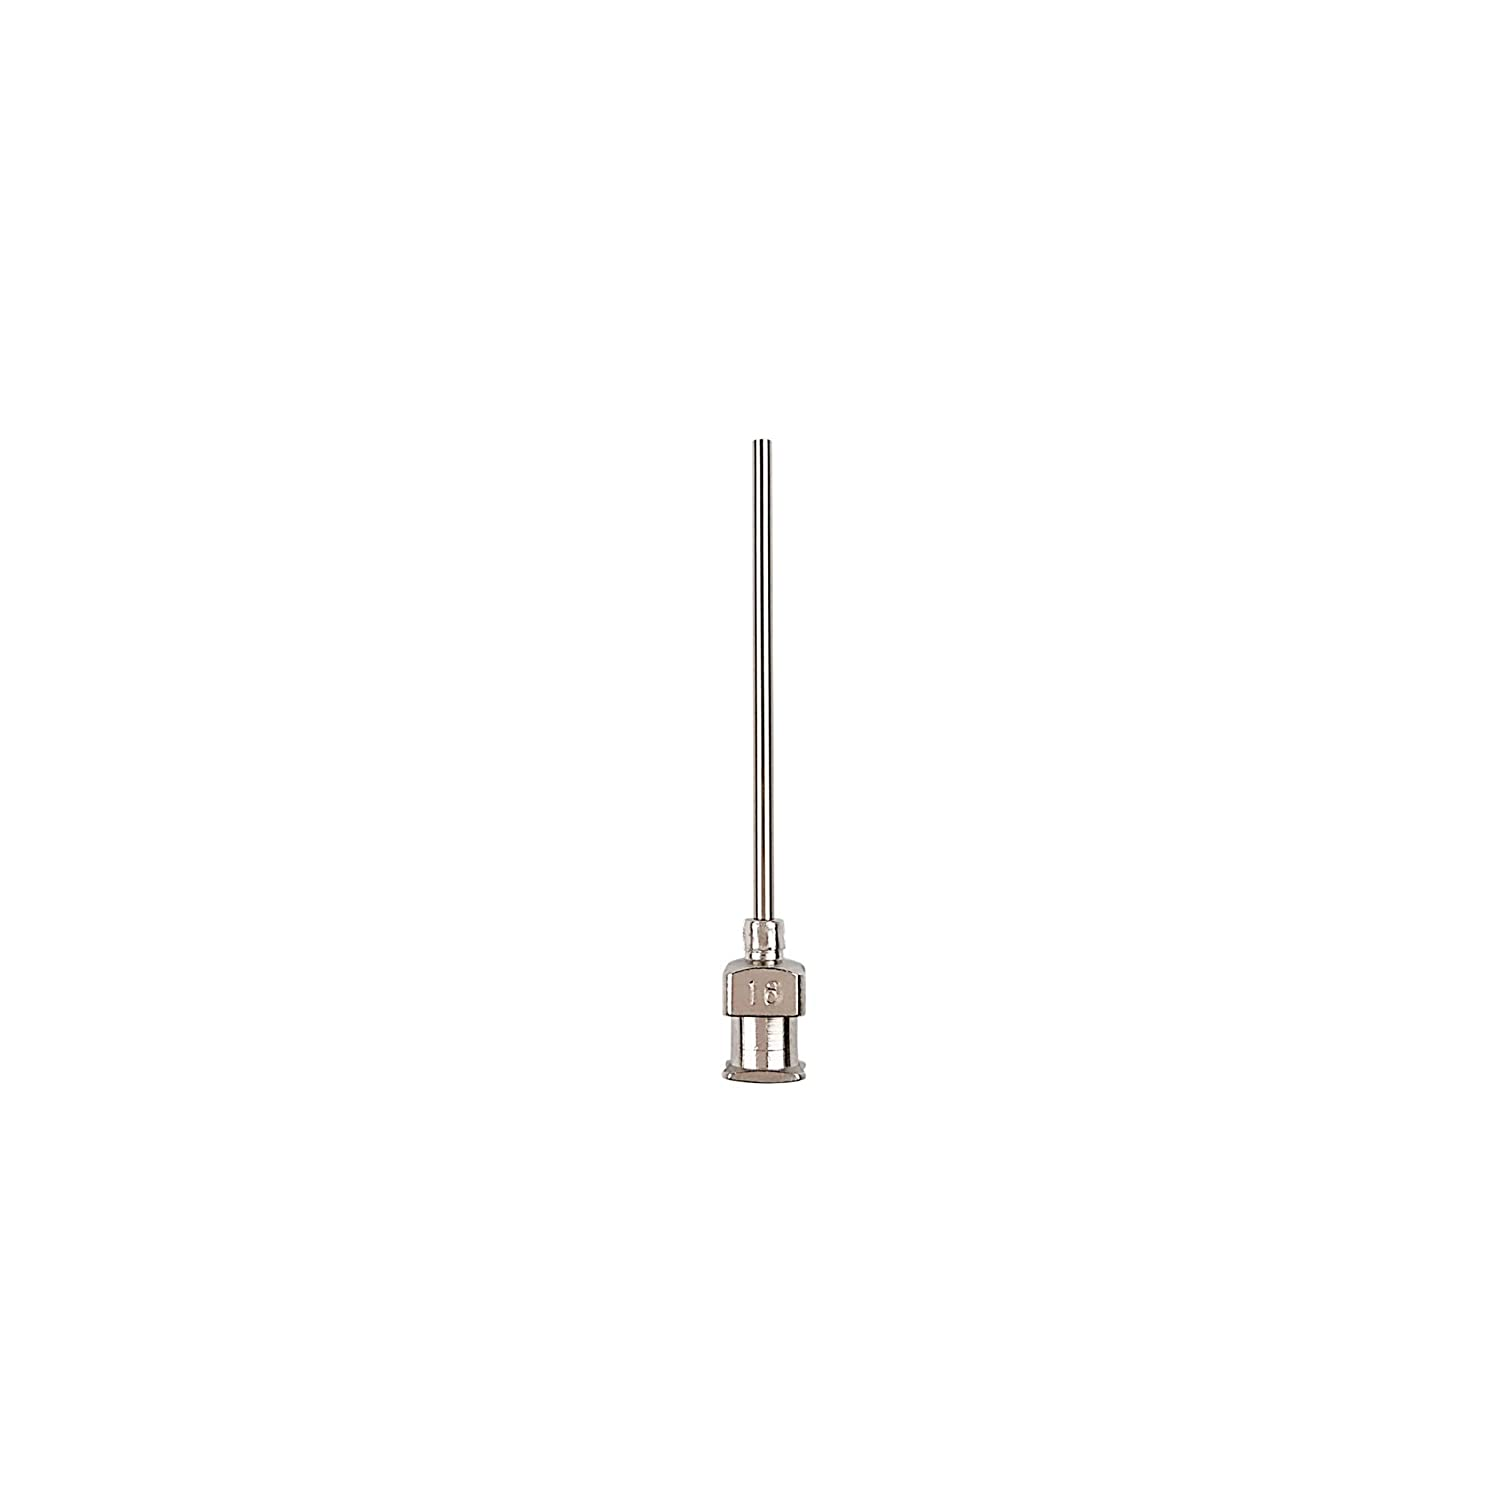 12Pcs-1.5 inch/38mm Blunt Tip Dispensing Needle.Stainless steel injection needles.Luer Lock Needle. (8Ga) SHAOTONG